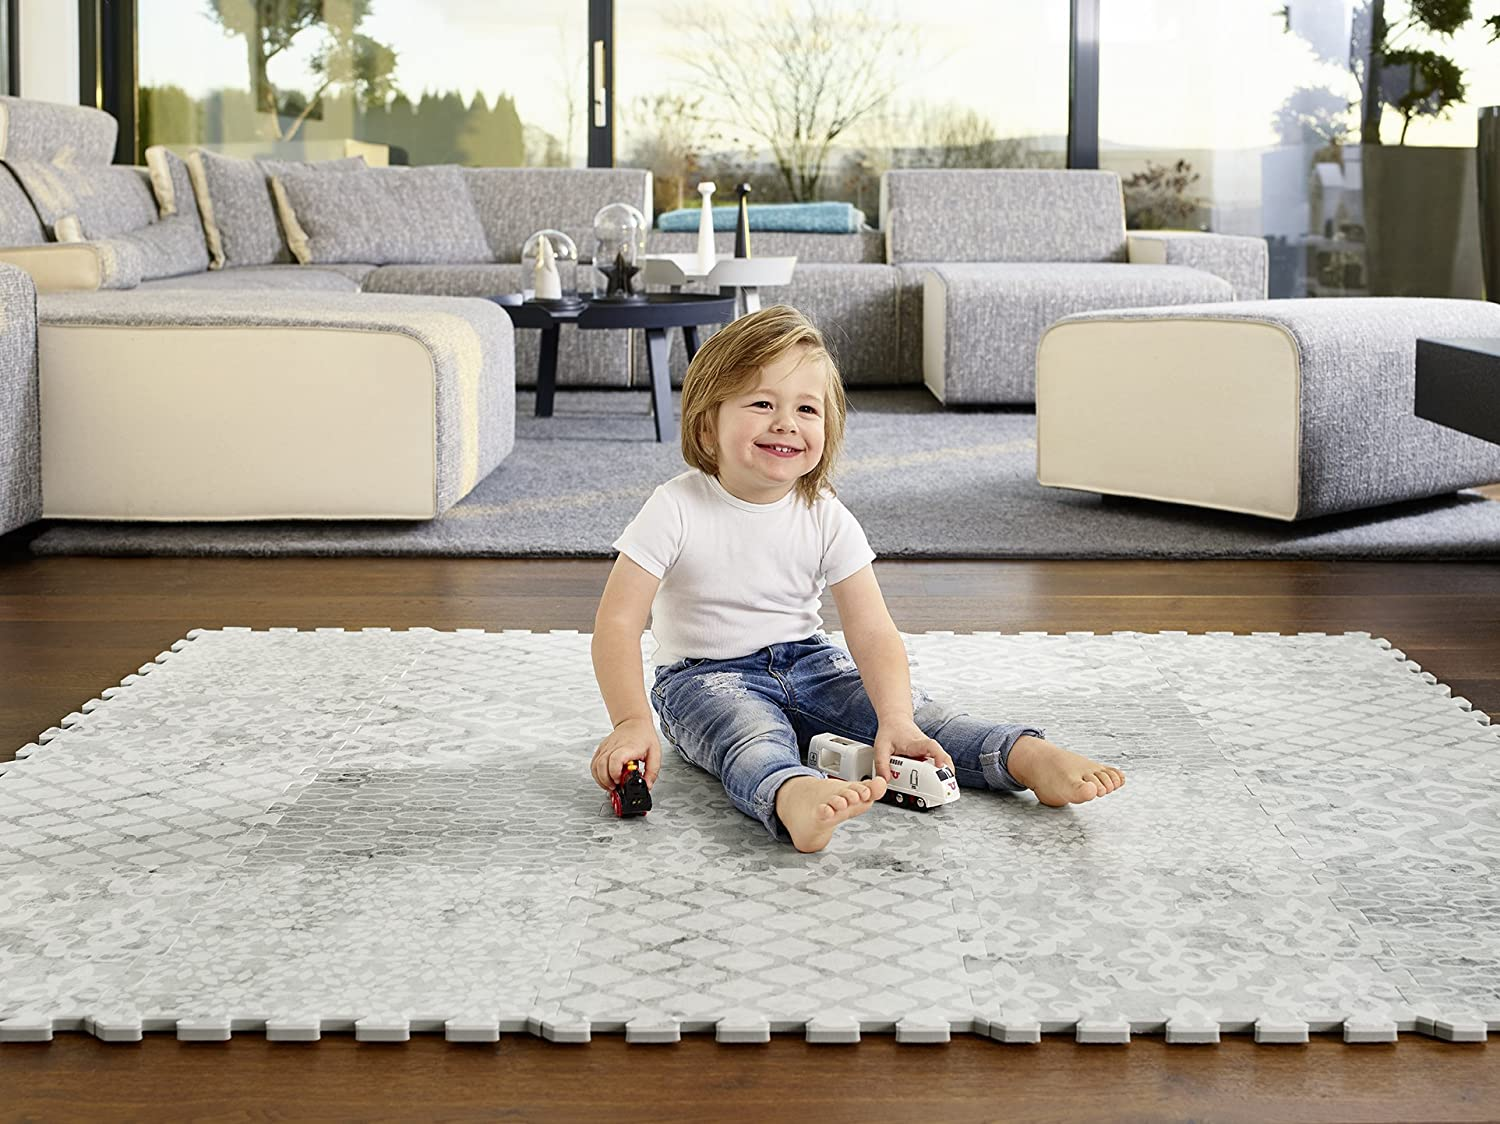 Baby's Best Products Lux Series Extra-Thick, Non-Toxic Play Mat Baby' s Best Products